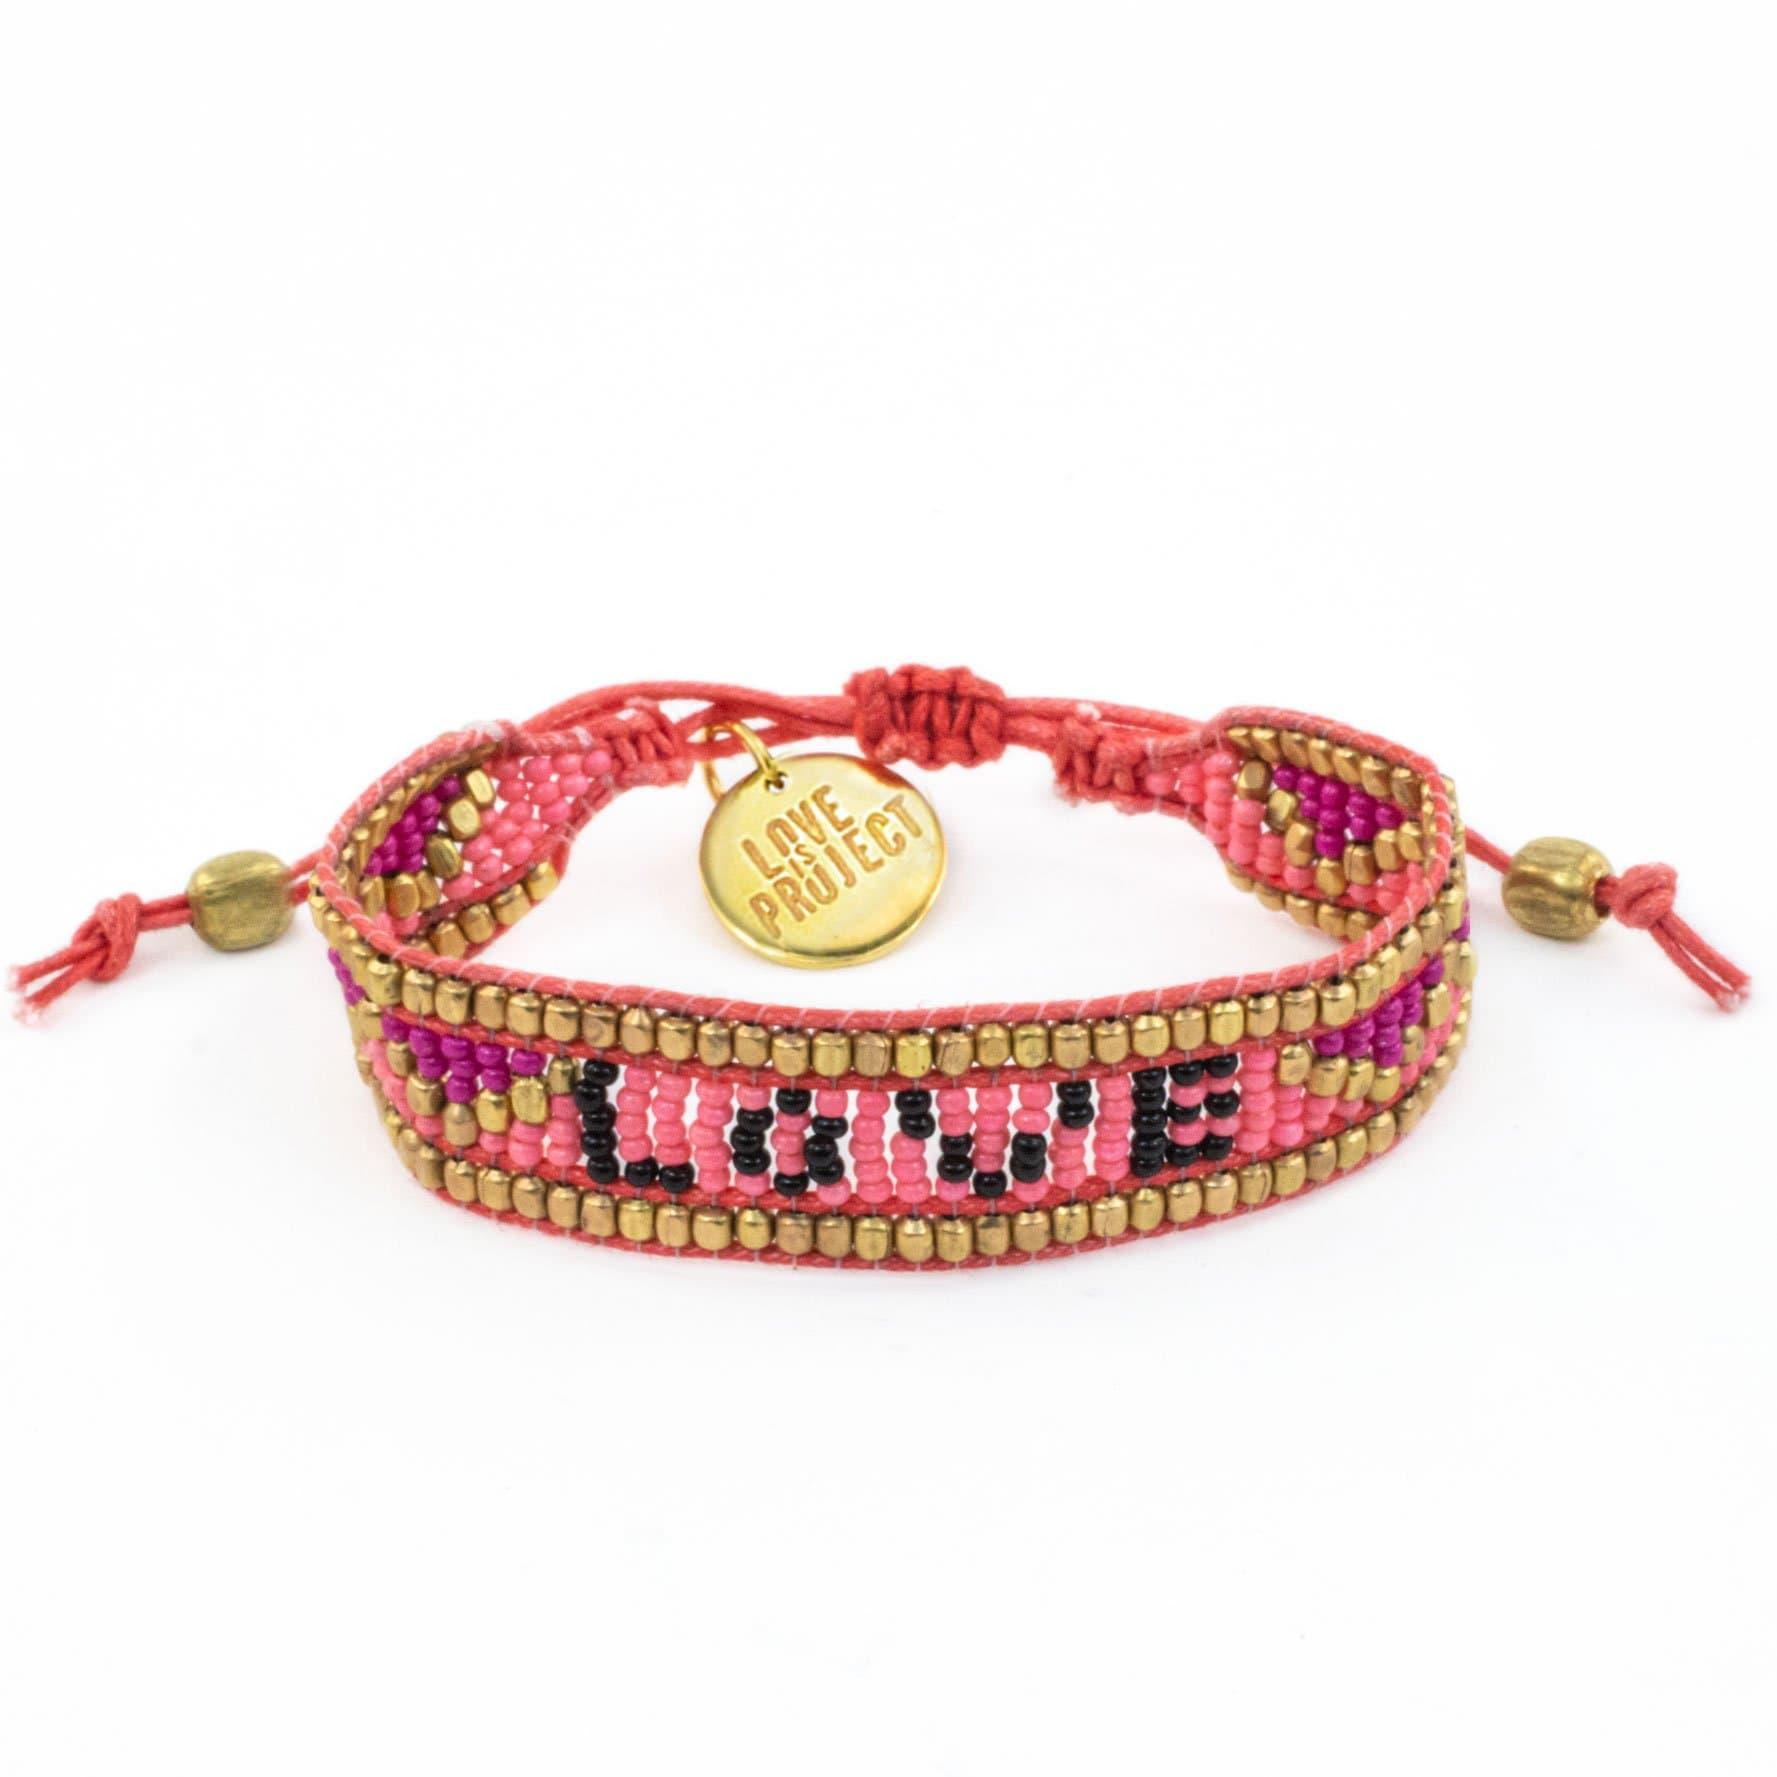 NEW ARRIVAL: Taj LOVE Bracelet - Pink & Black